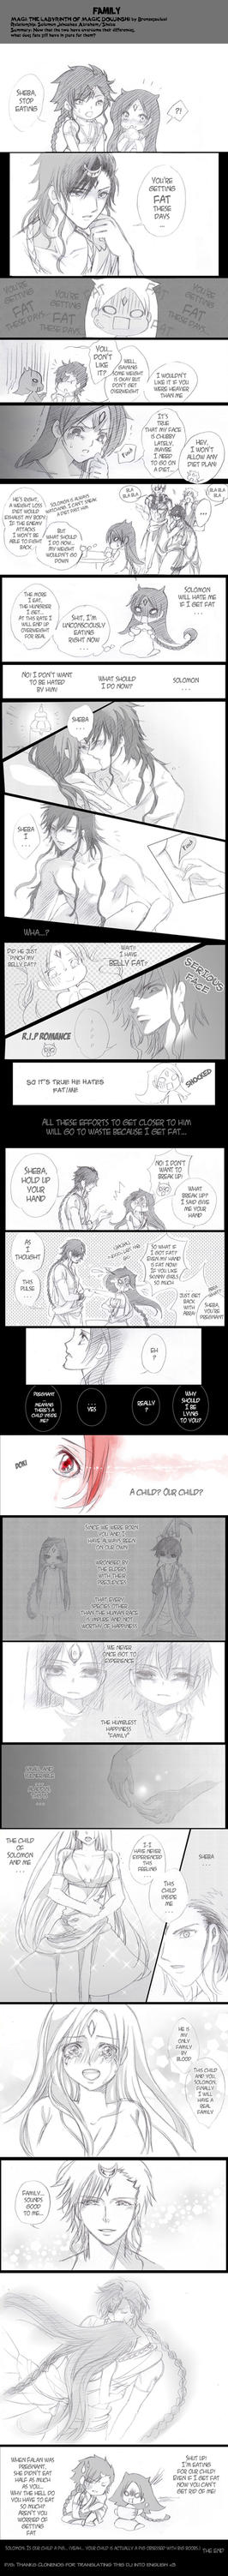 FAMILY (Doujinshi MAGI: The labyrinth of magic) by bronze11